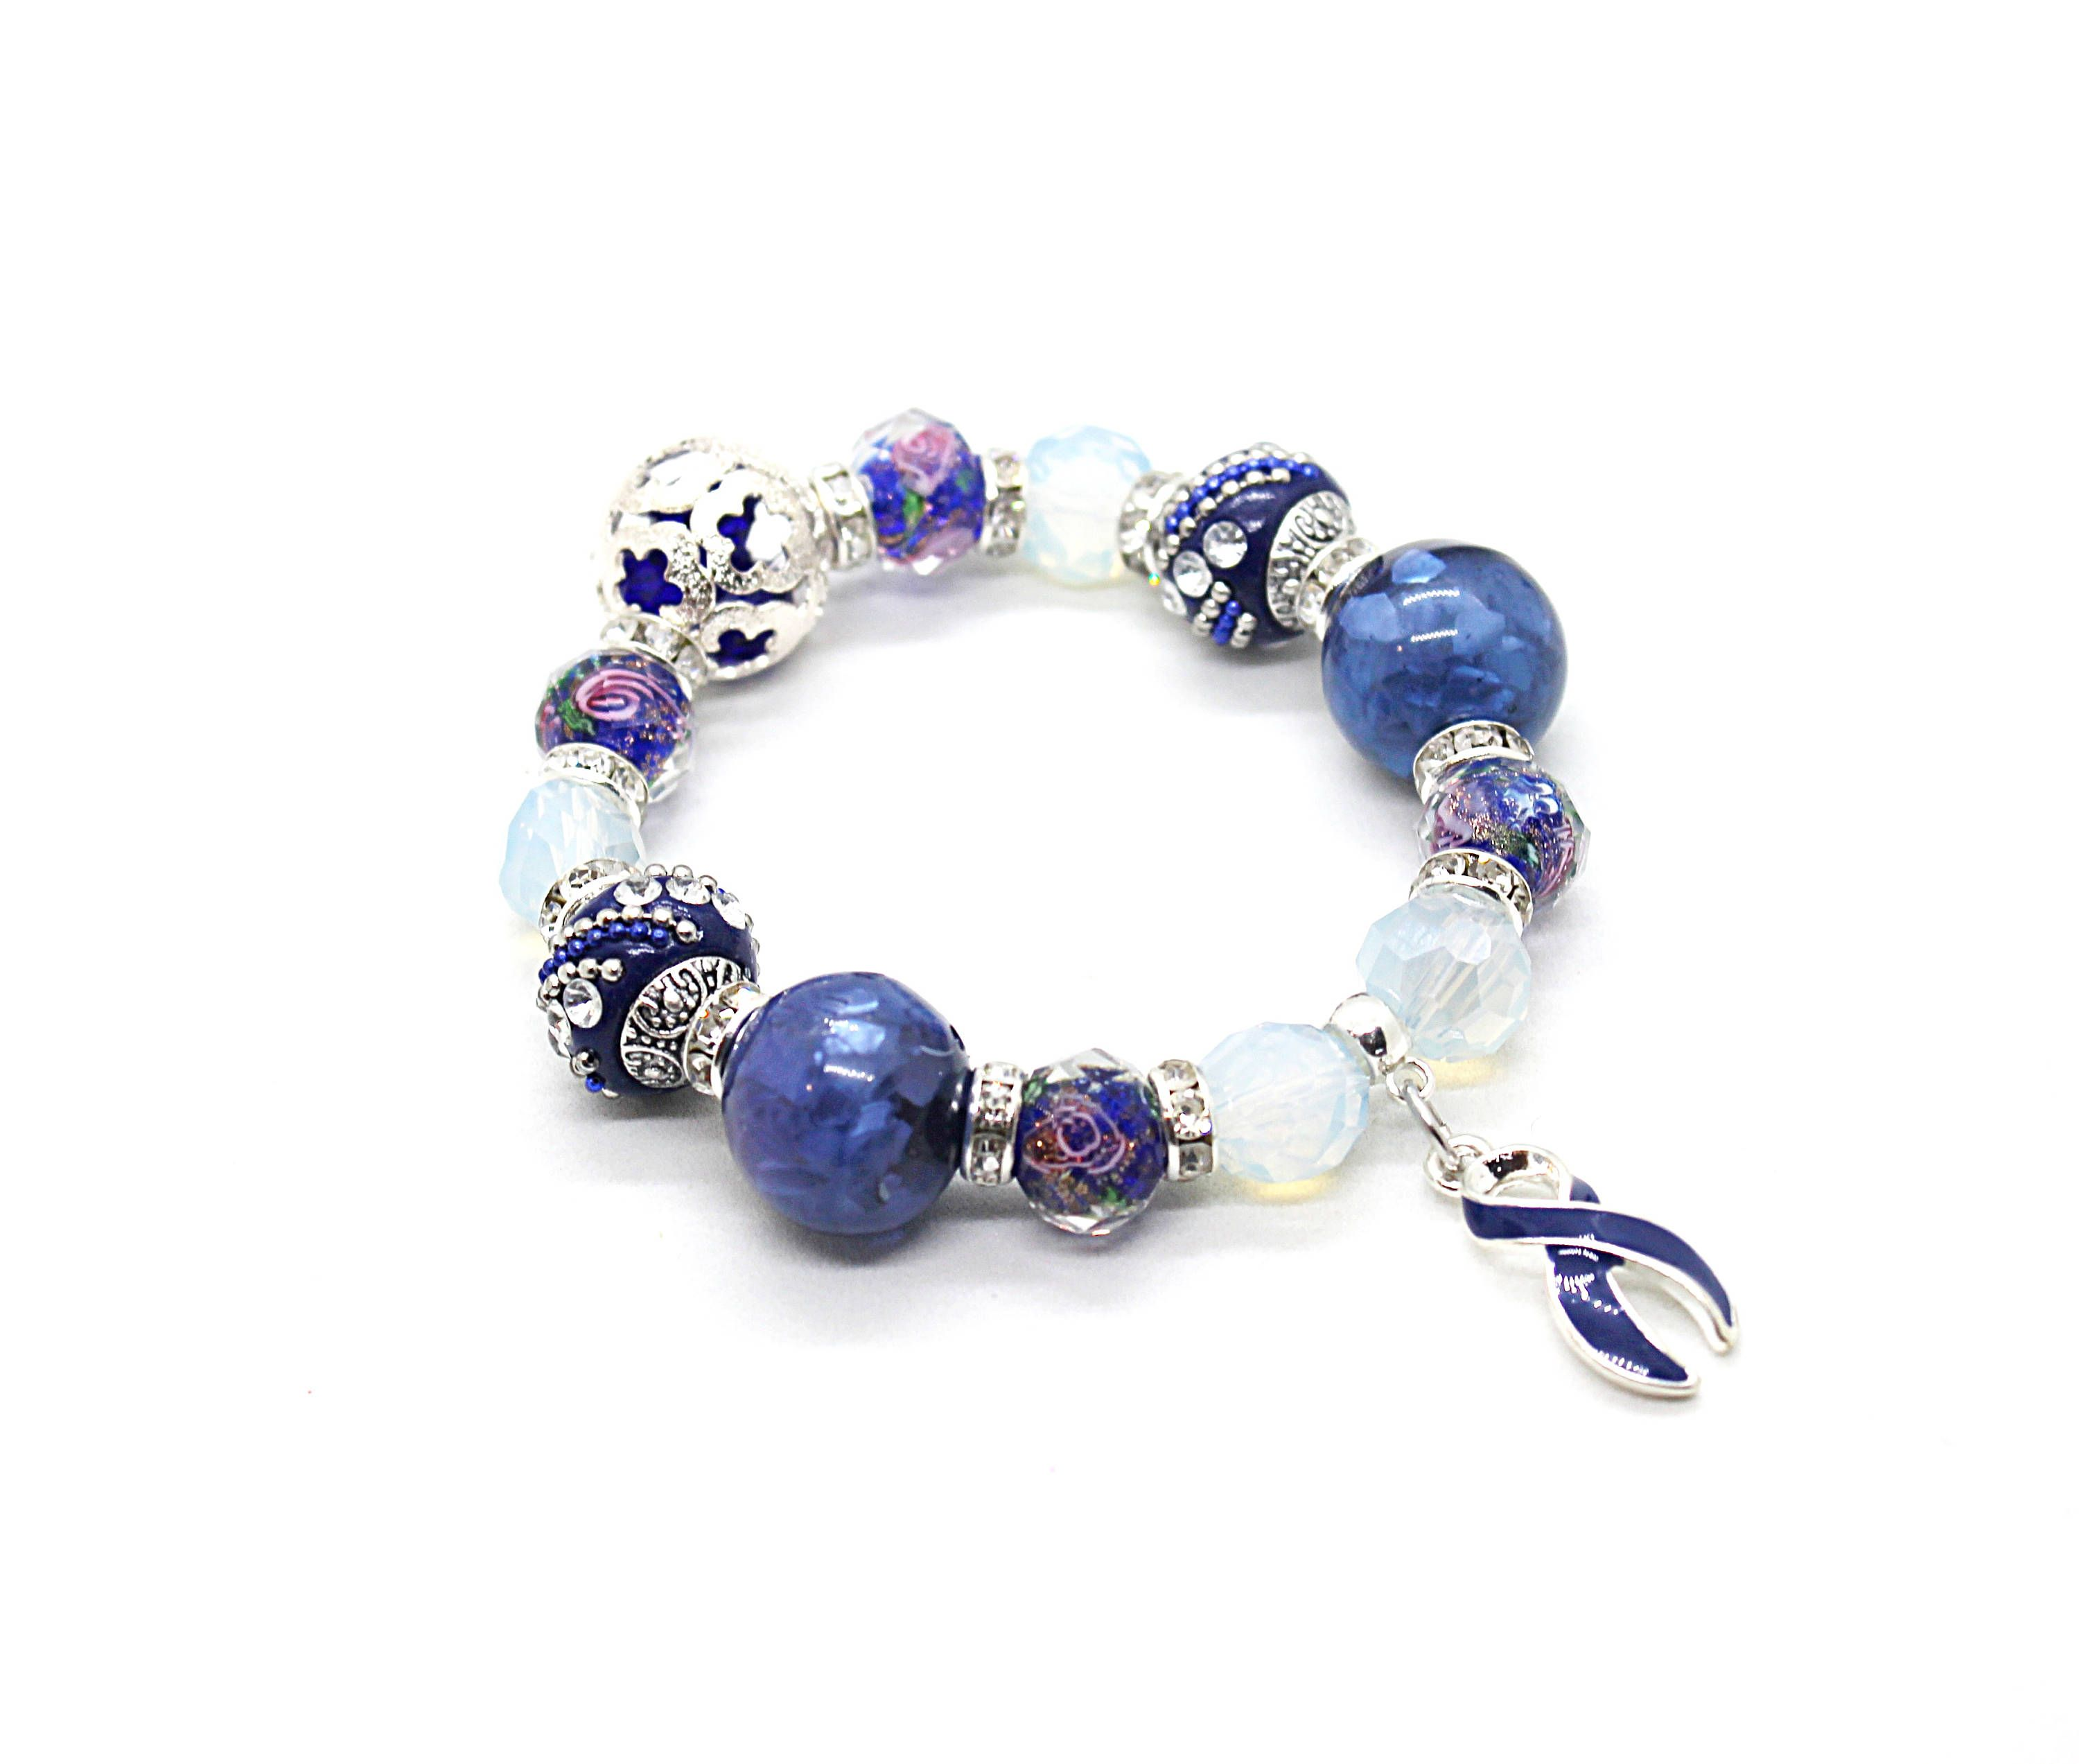 awareness beads p colon murano cancer fullxfull bracelet lampwork european glass il jewelry